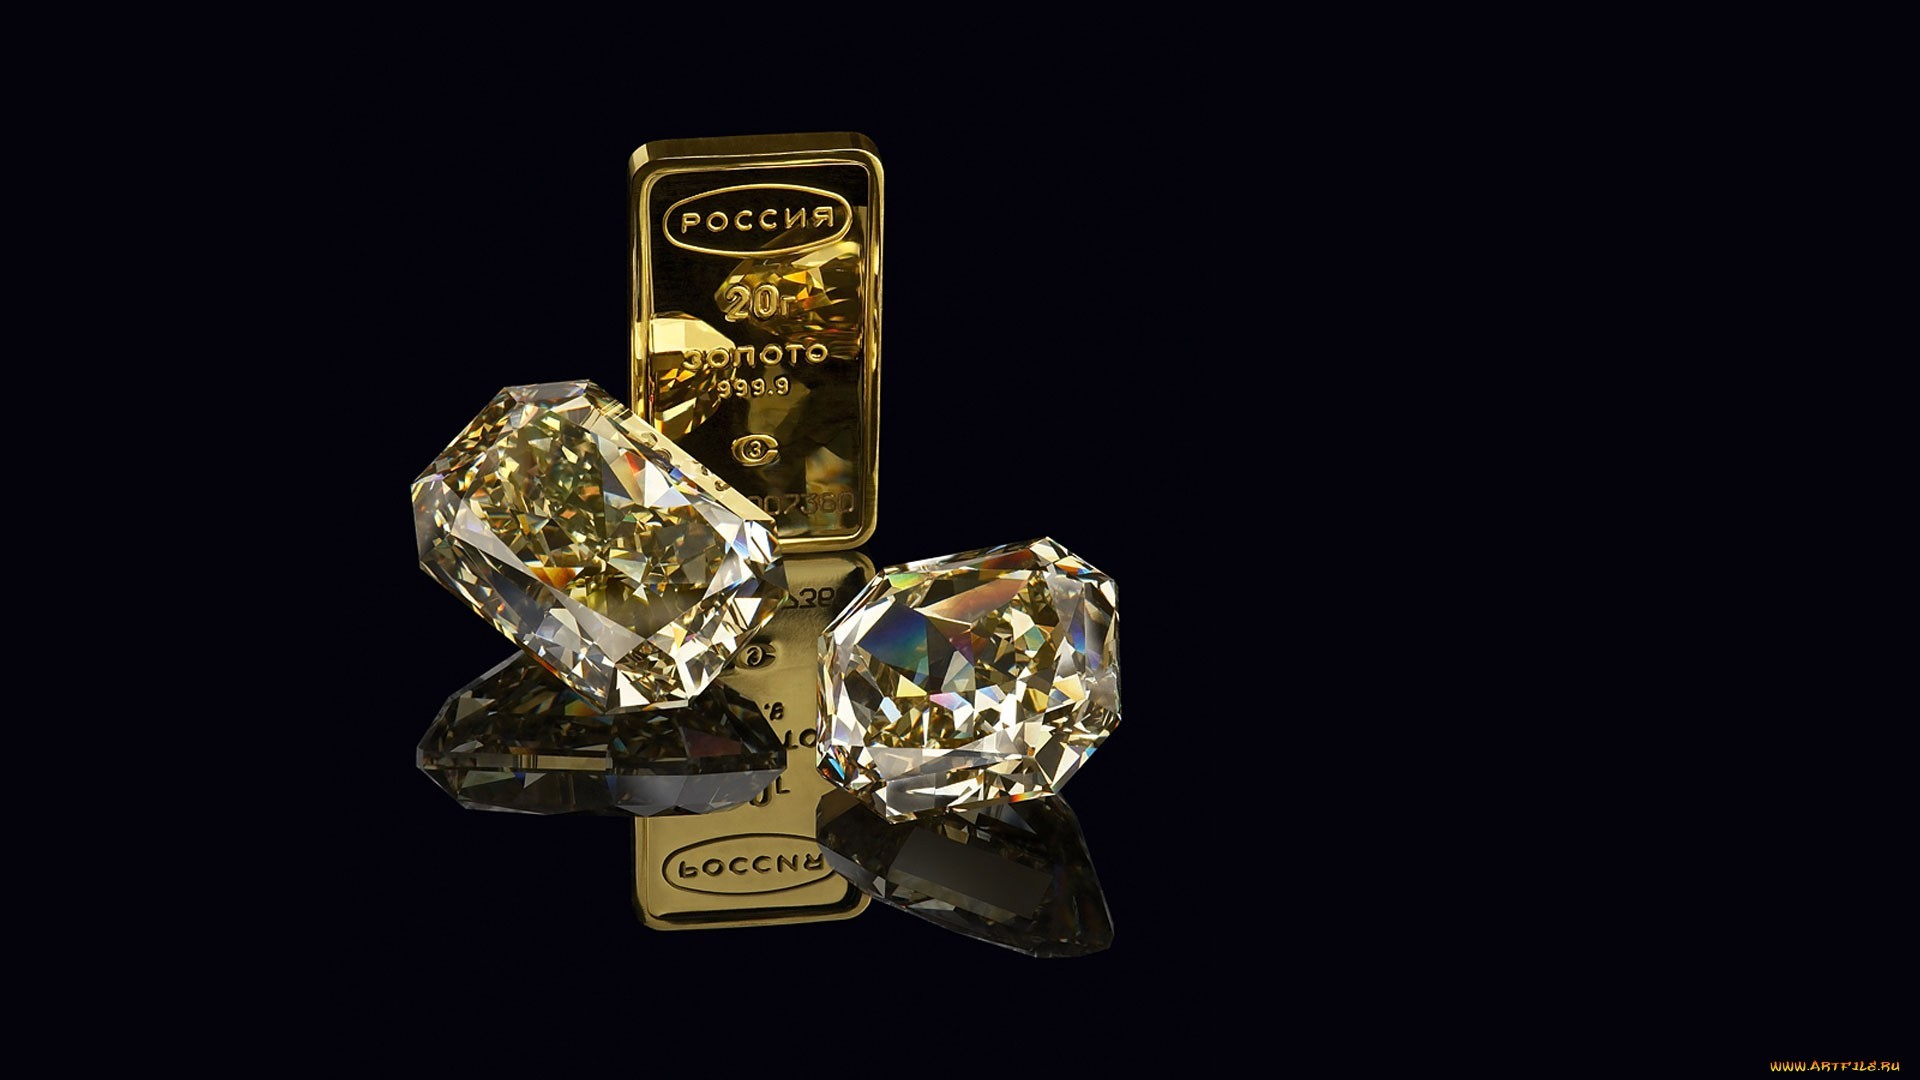 19761 download wallpaper Stones, Objects, Gold, Jewelry screensavers and pictures for free